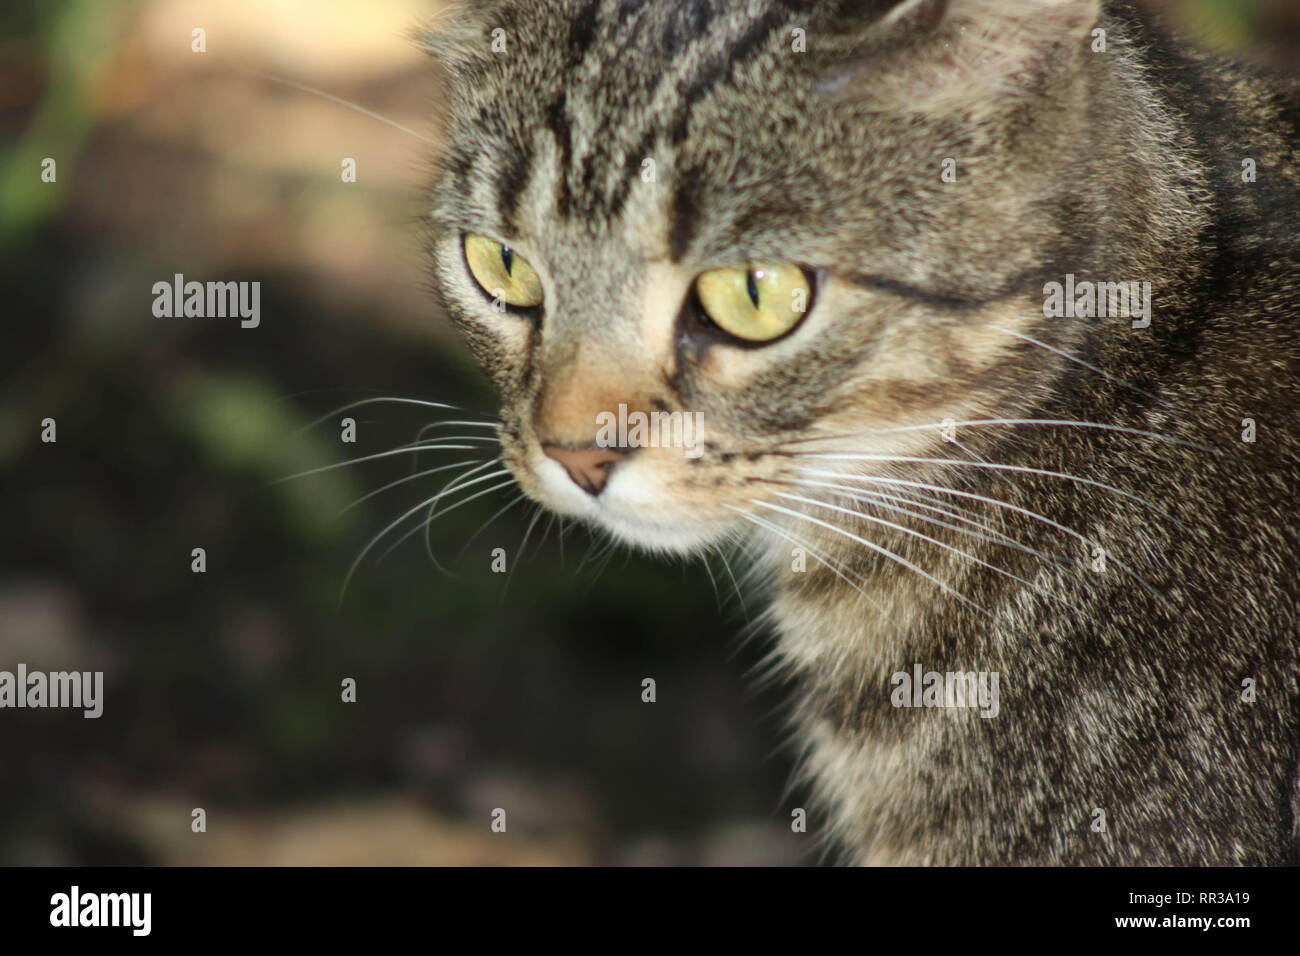 Isolated Closeup portrait of a female tabby cat outside with blurred out background - Stock Image